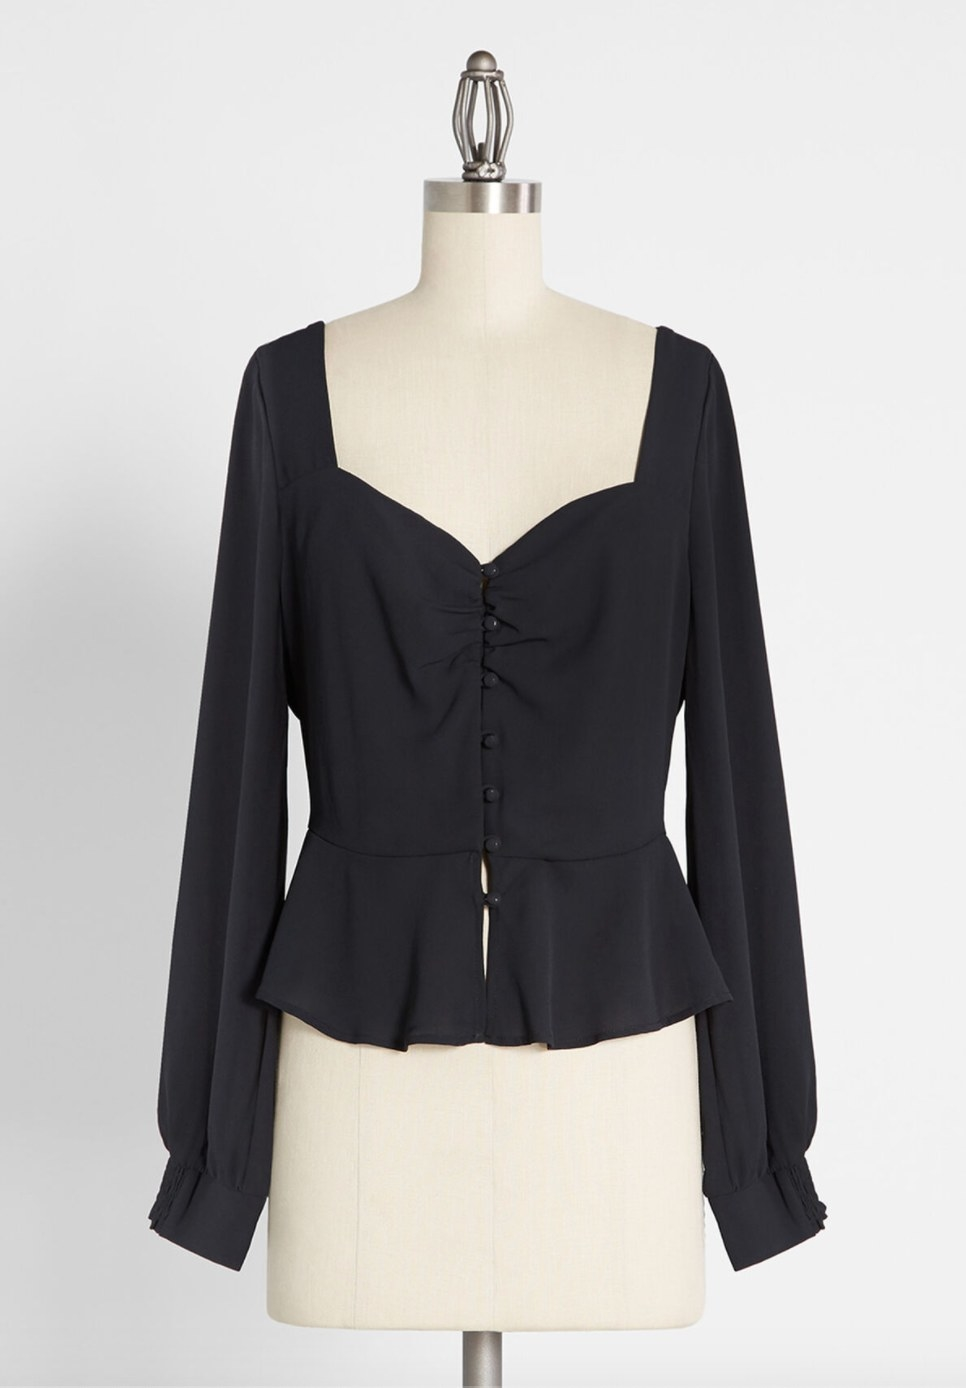 The black cinched blouse